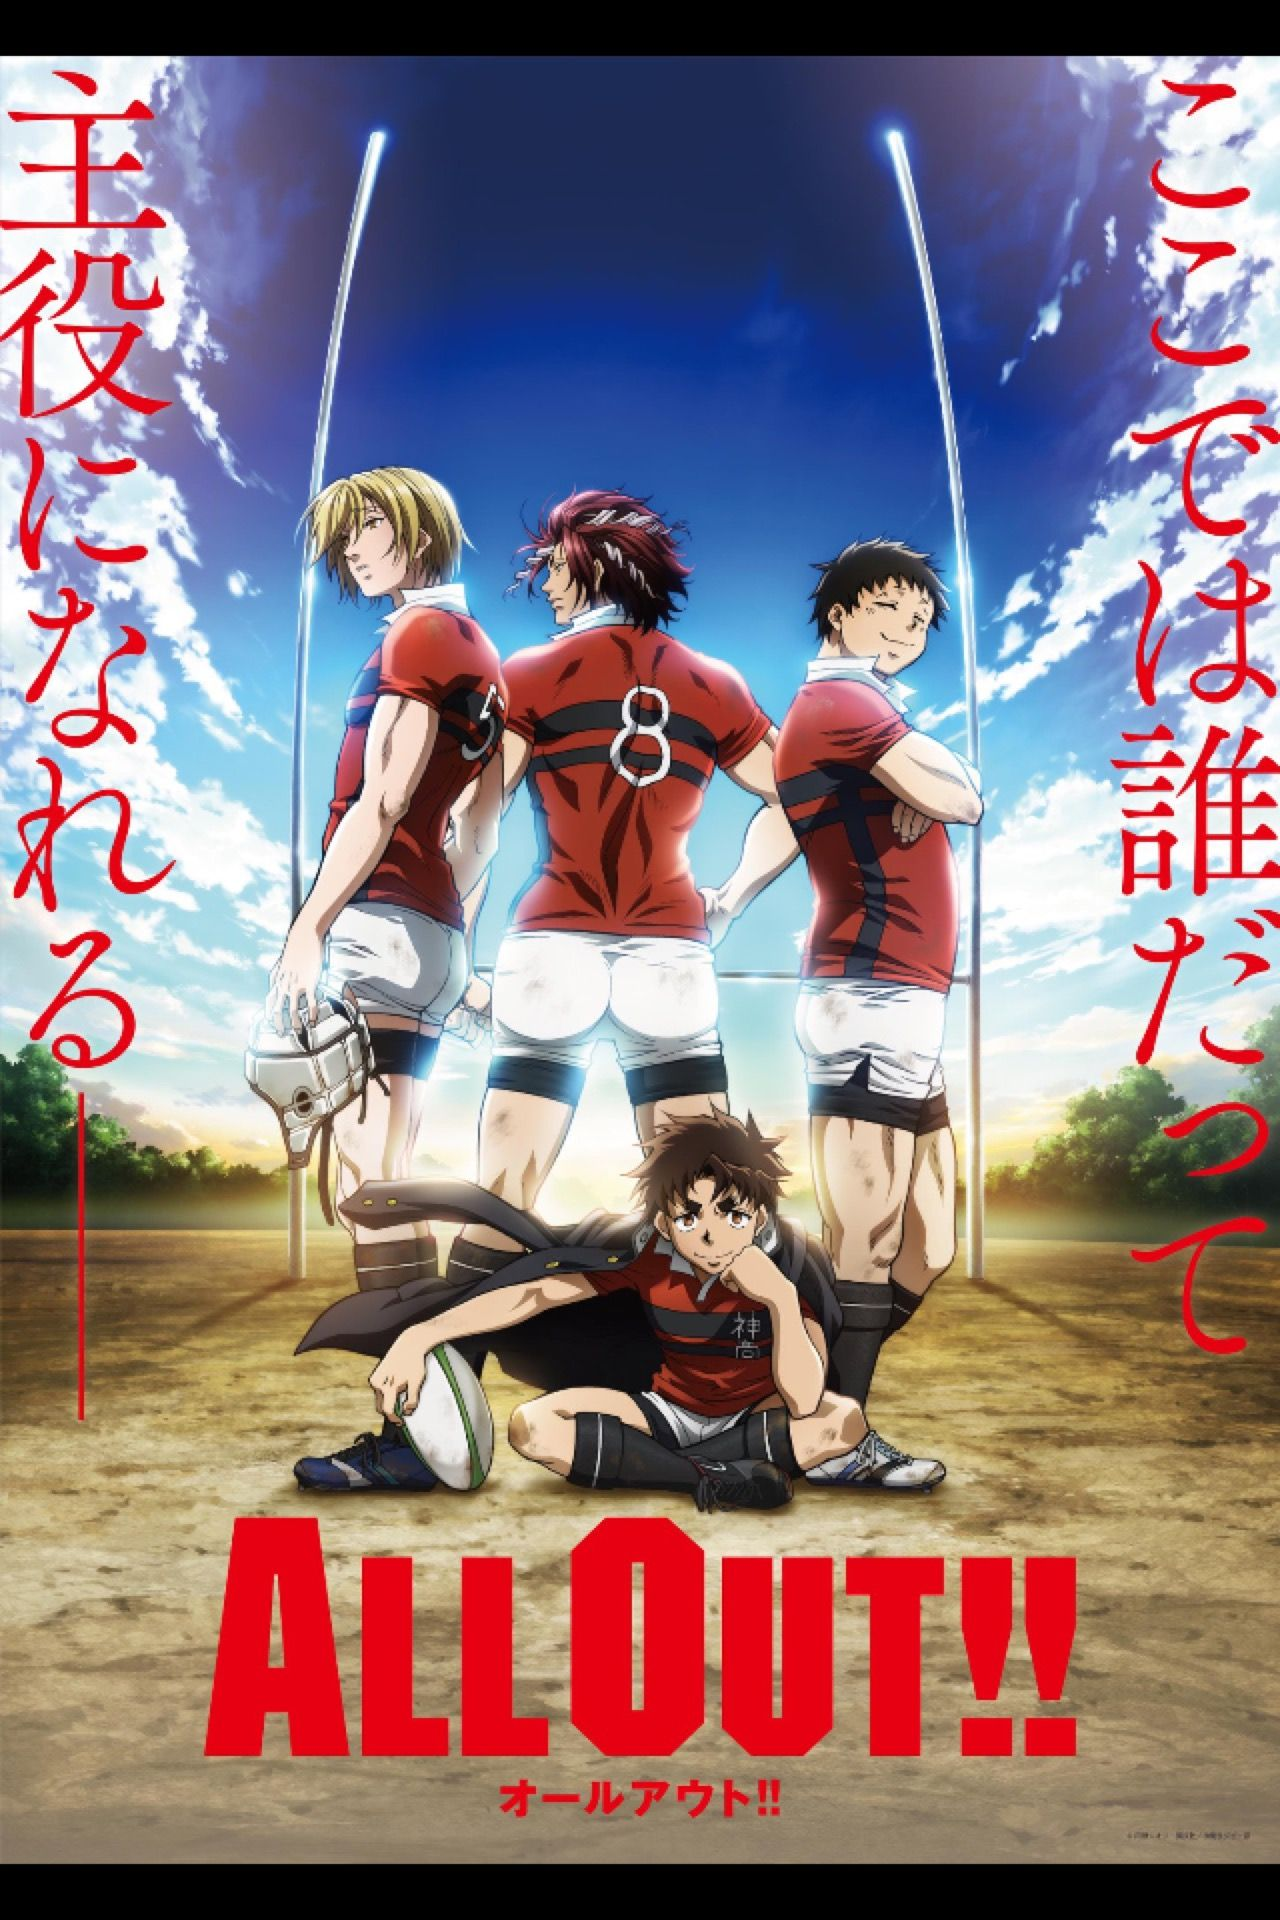 All Out!! /// Genres: School, Seinen, Sports